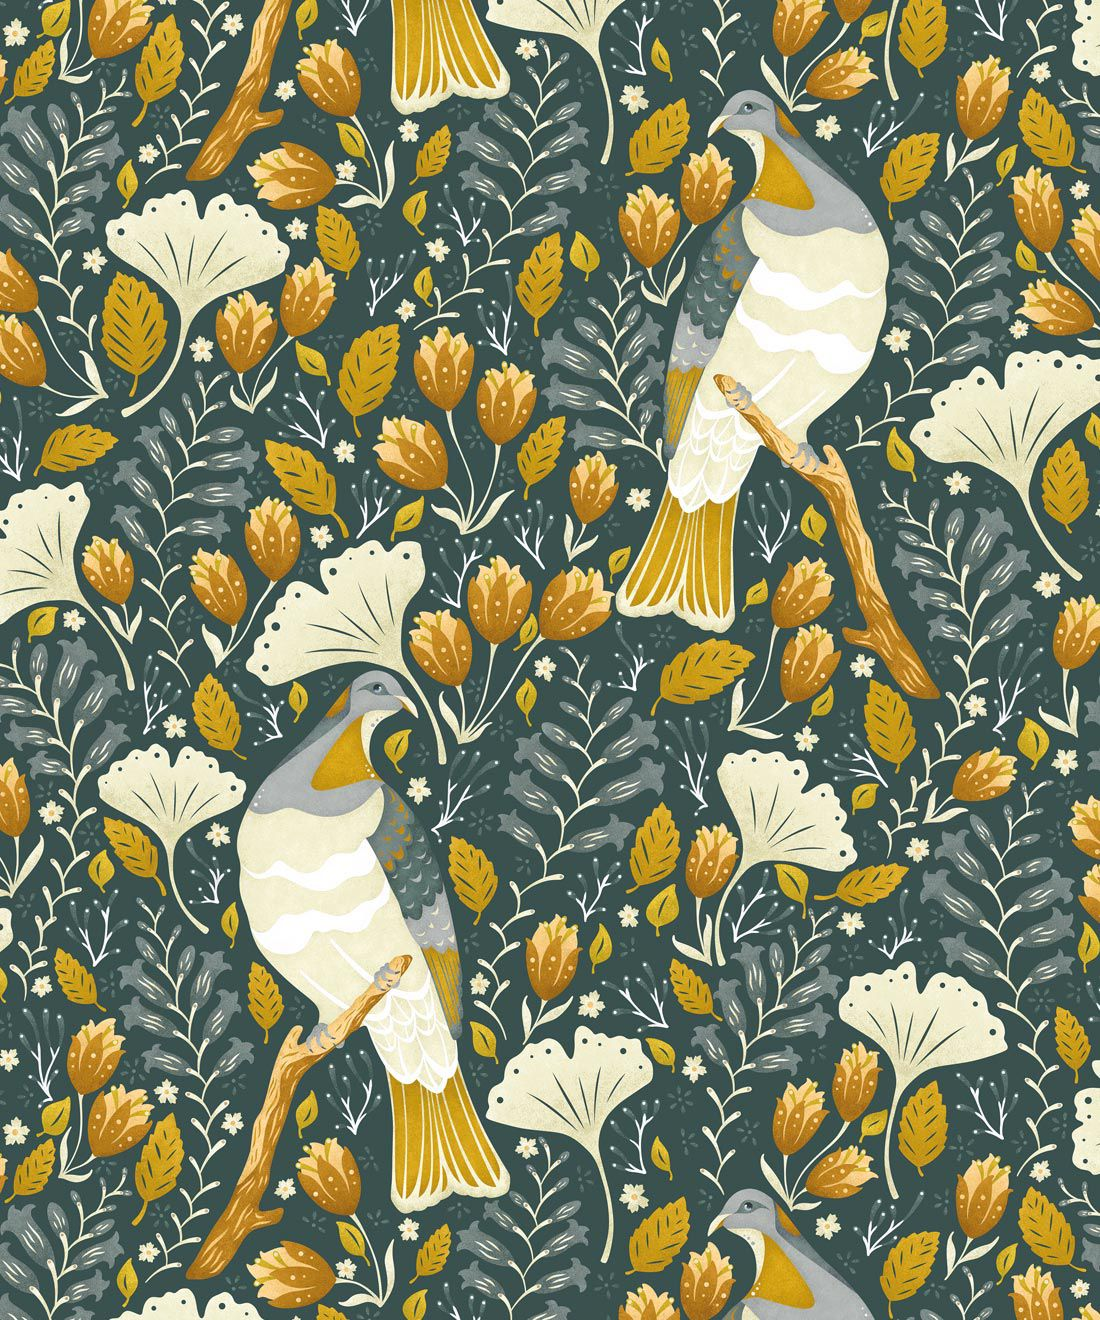 Kereru Wallpaper • Wood Pigeon• Bird Wallpaper • Mustard Green Wallpaper